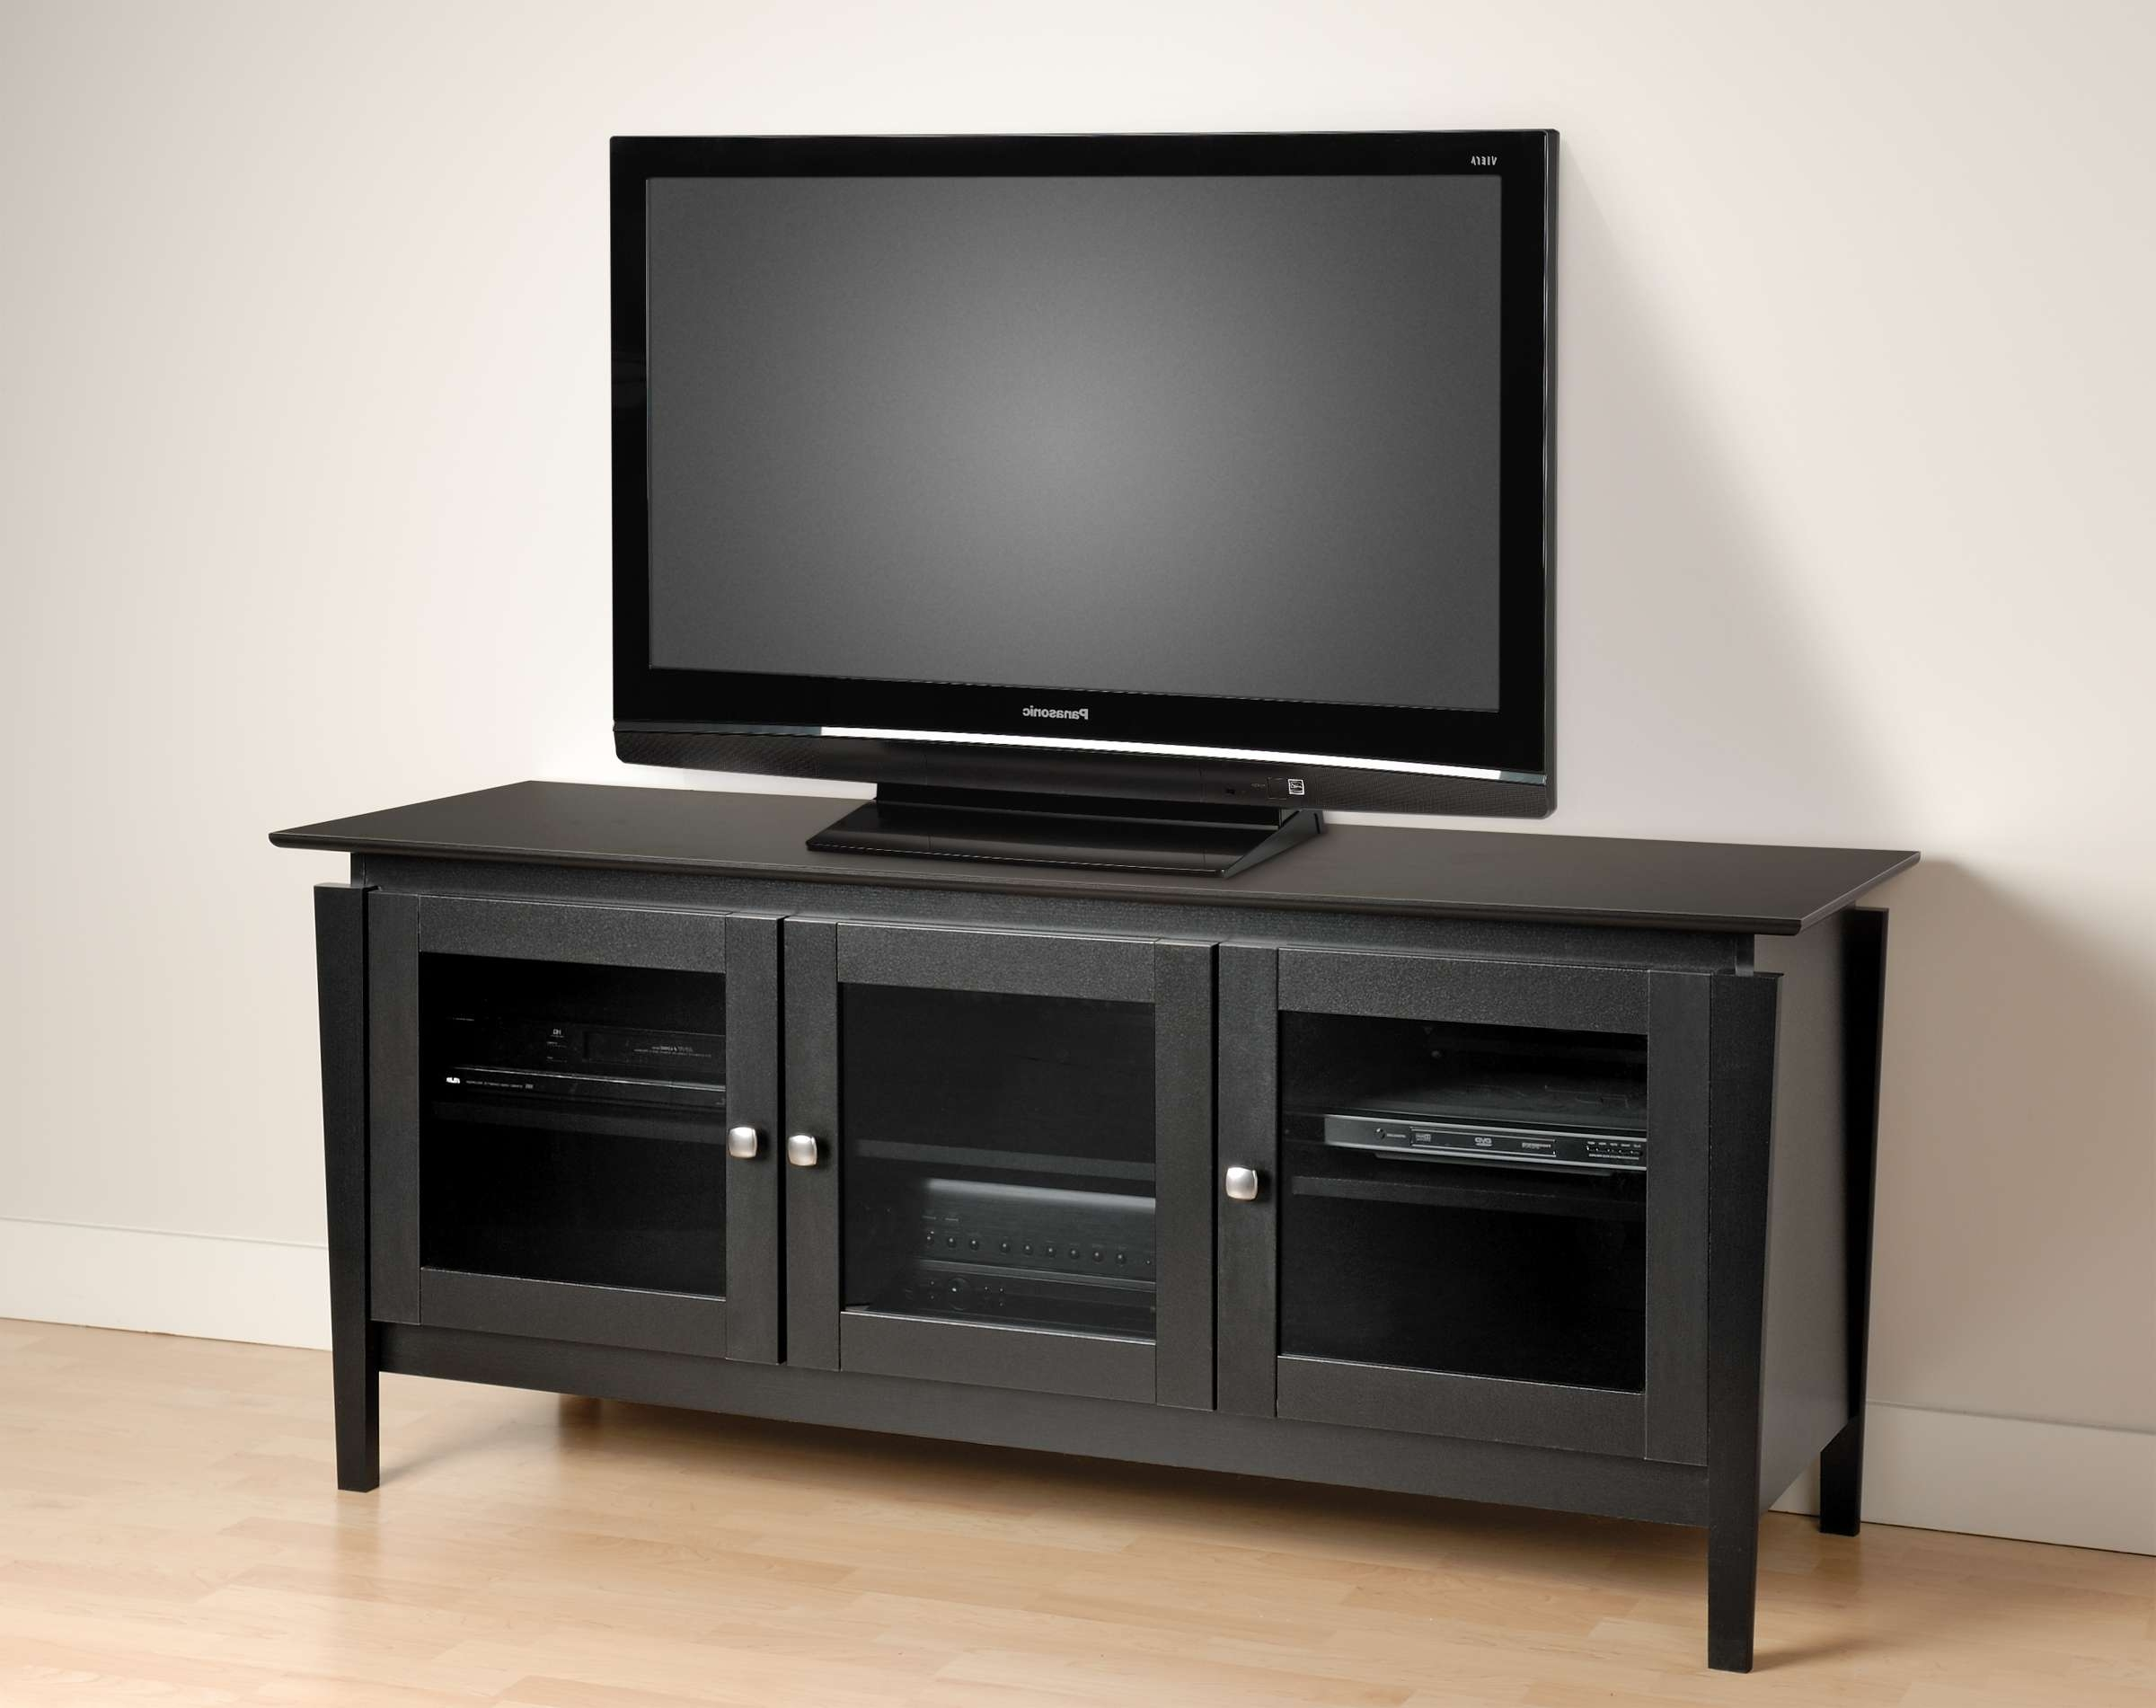 Modern Black Stained Oak Wood Media Cabinet With Glass Doors Of With Wooden Tv Cabinets With Glass Doors (View 7 of 20)